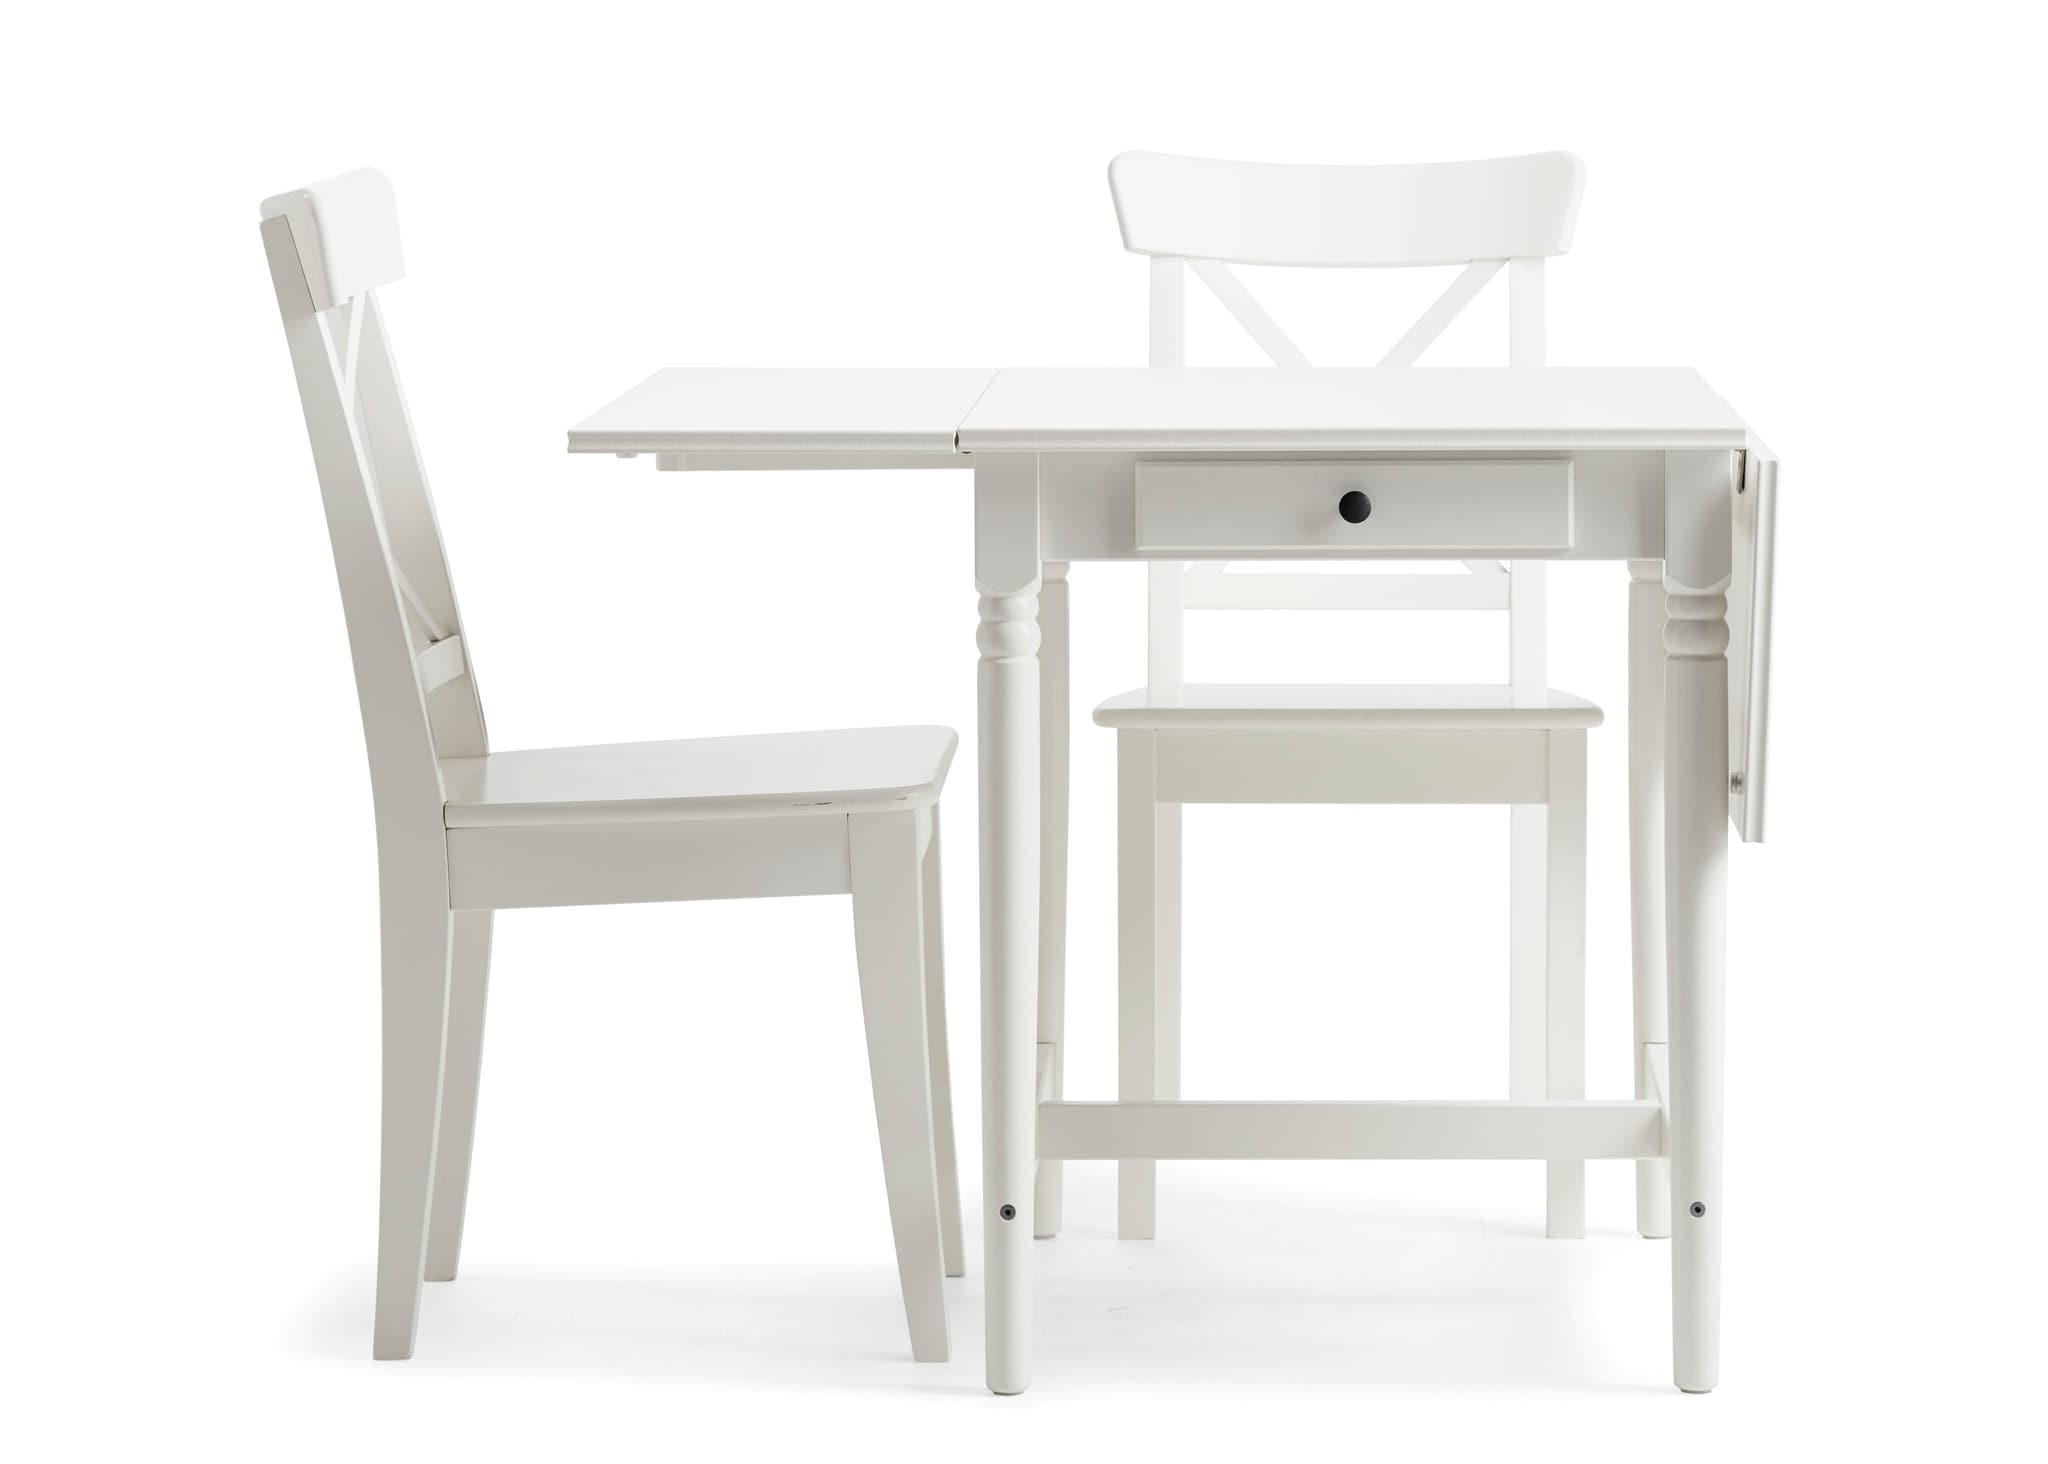 Ikea In Current Compact Dining Tables And Chairs (Gallery 17 of 25)